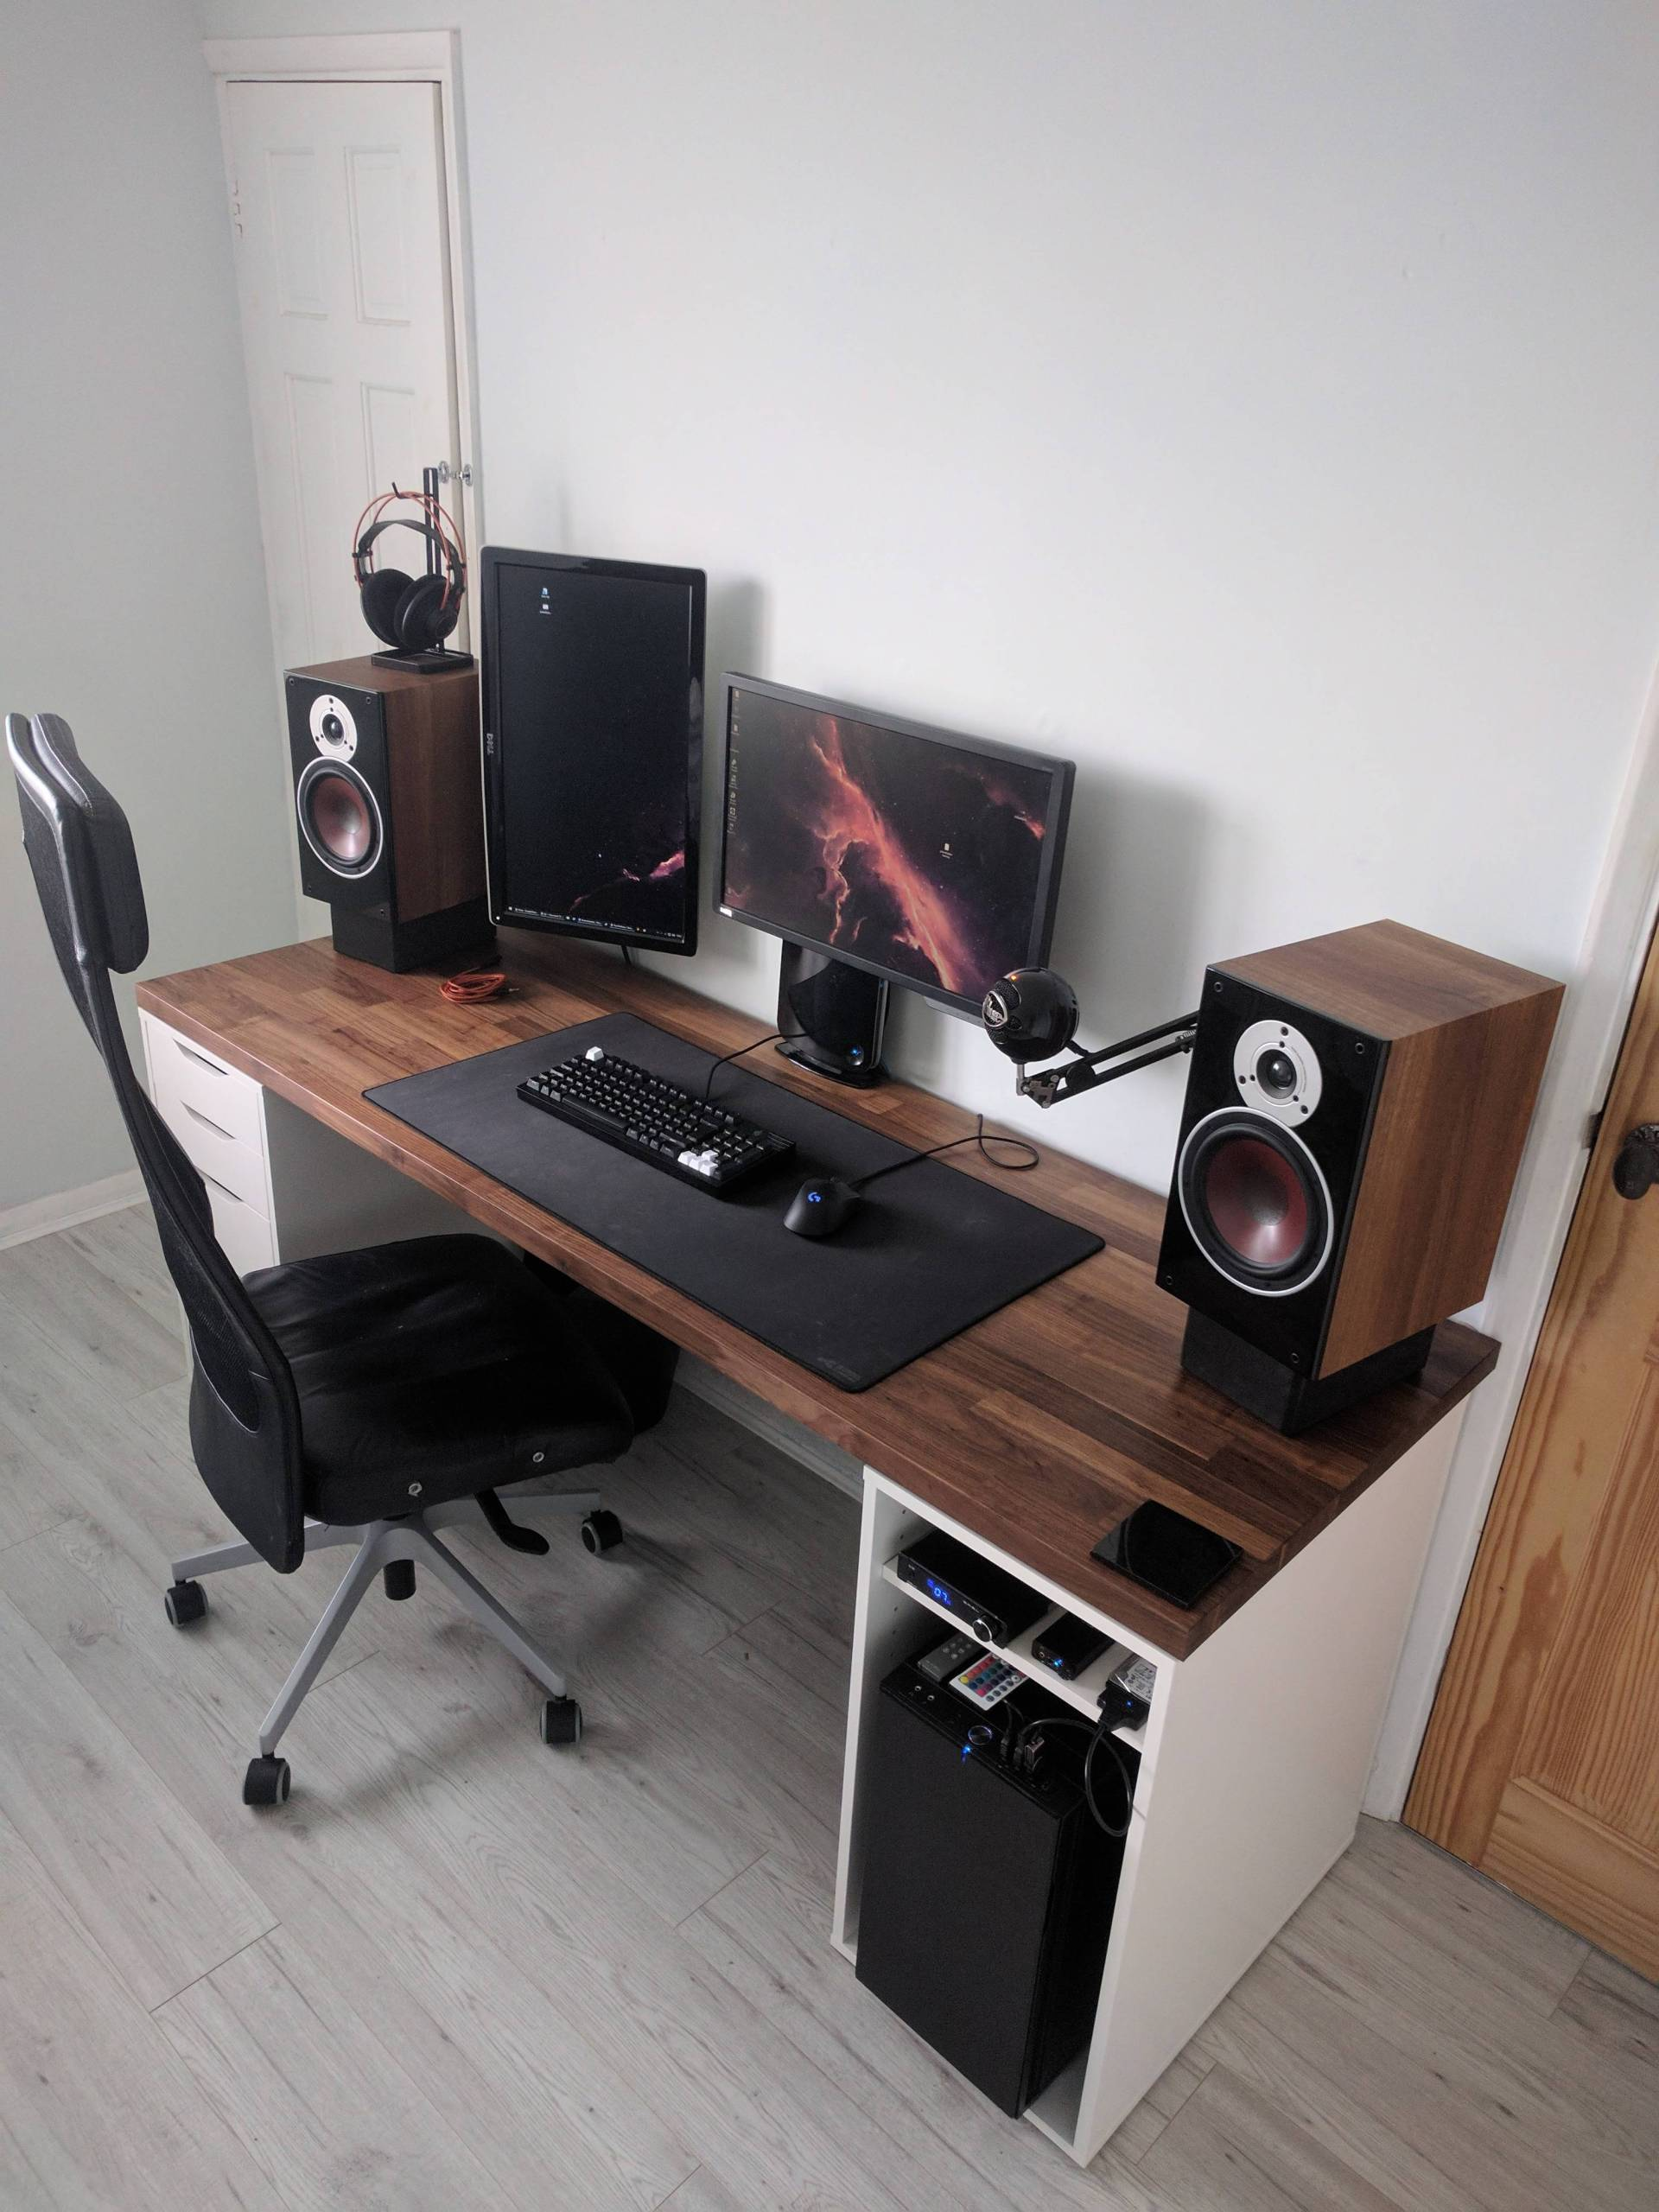 Top 21 Battlestations of 2017